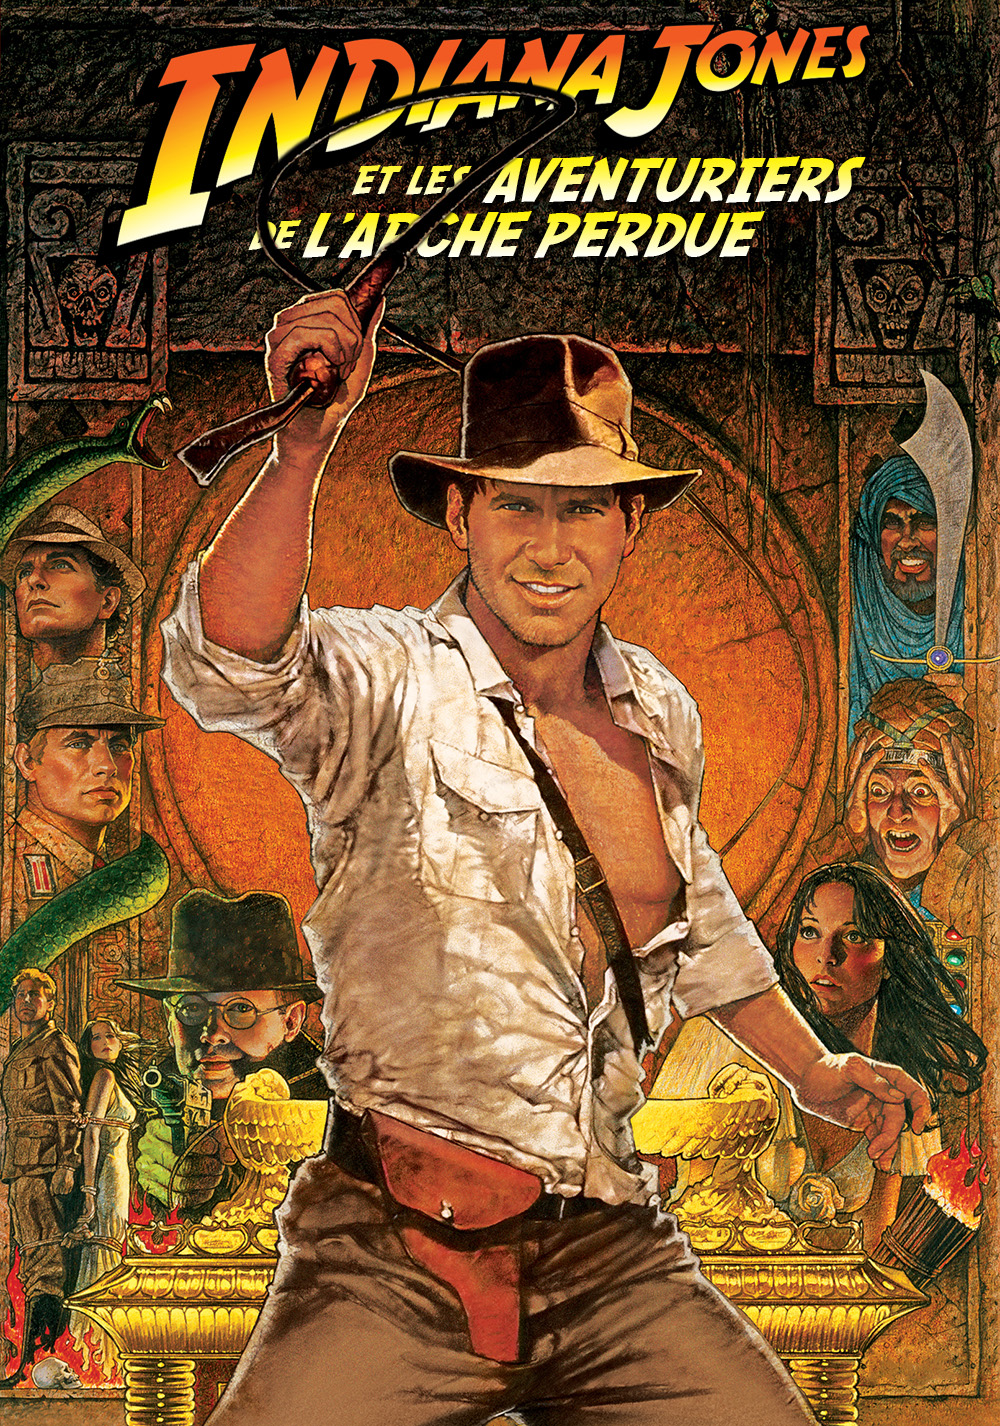 RAIDERS OF THE LOST ARK (1981) TAMIL DUBBED HD